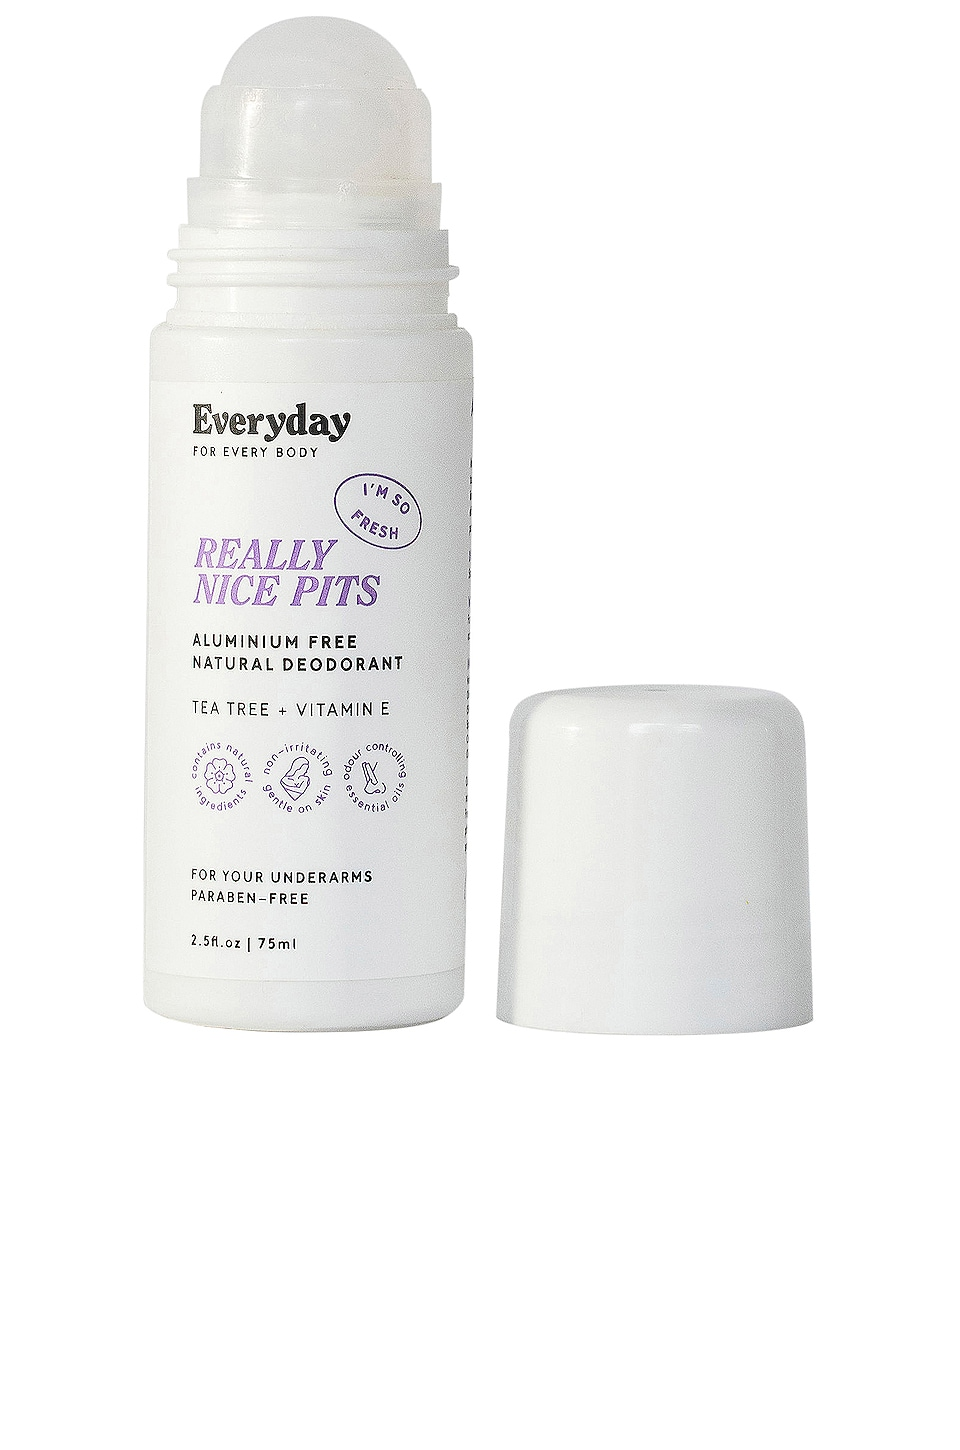 Everyday for Every Body REALLY NICE PITS Aluminum Free Natural Deodorant